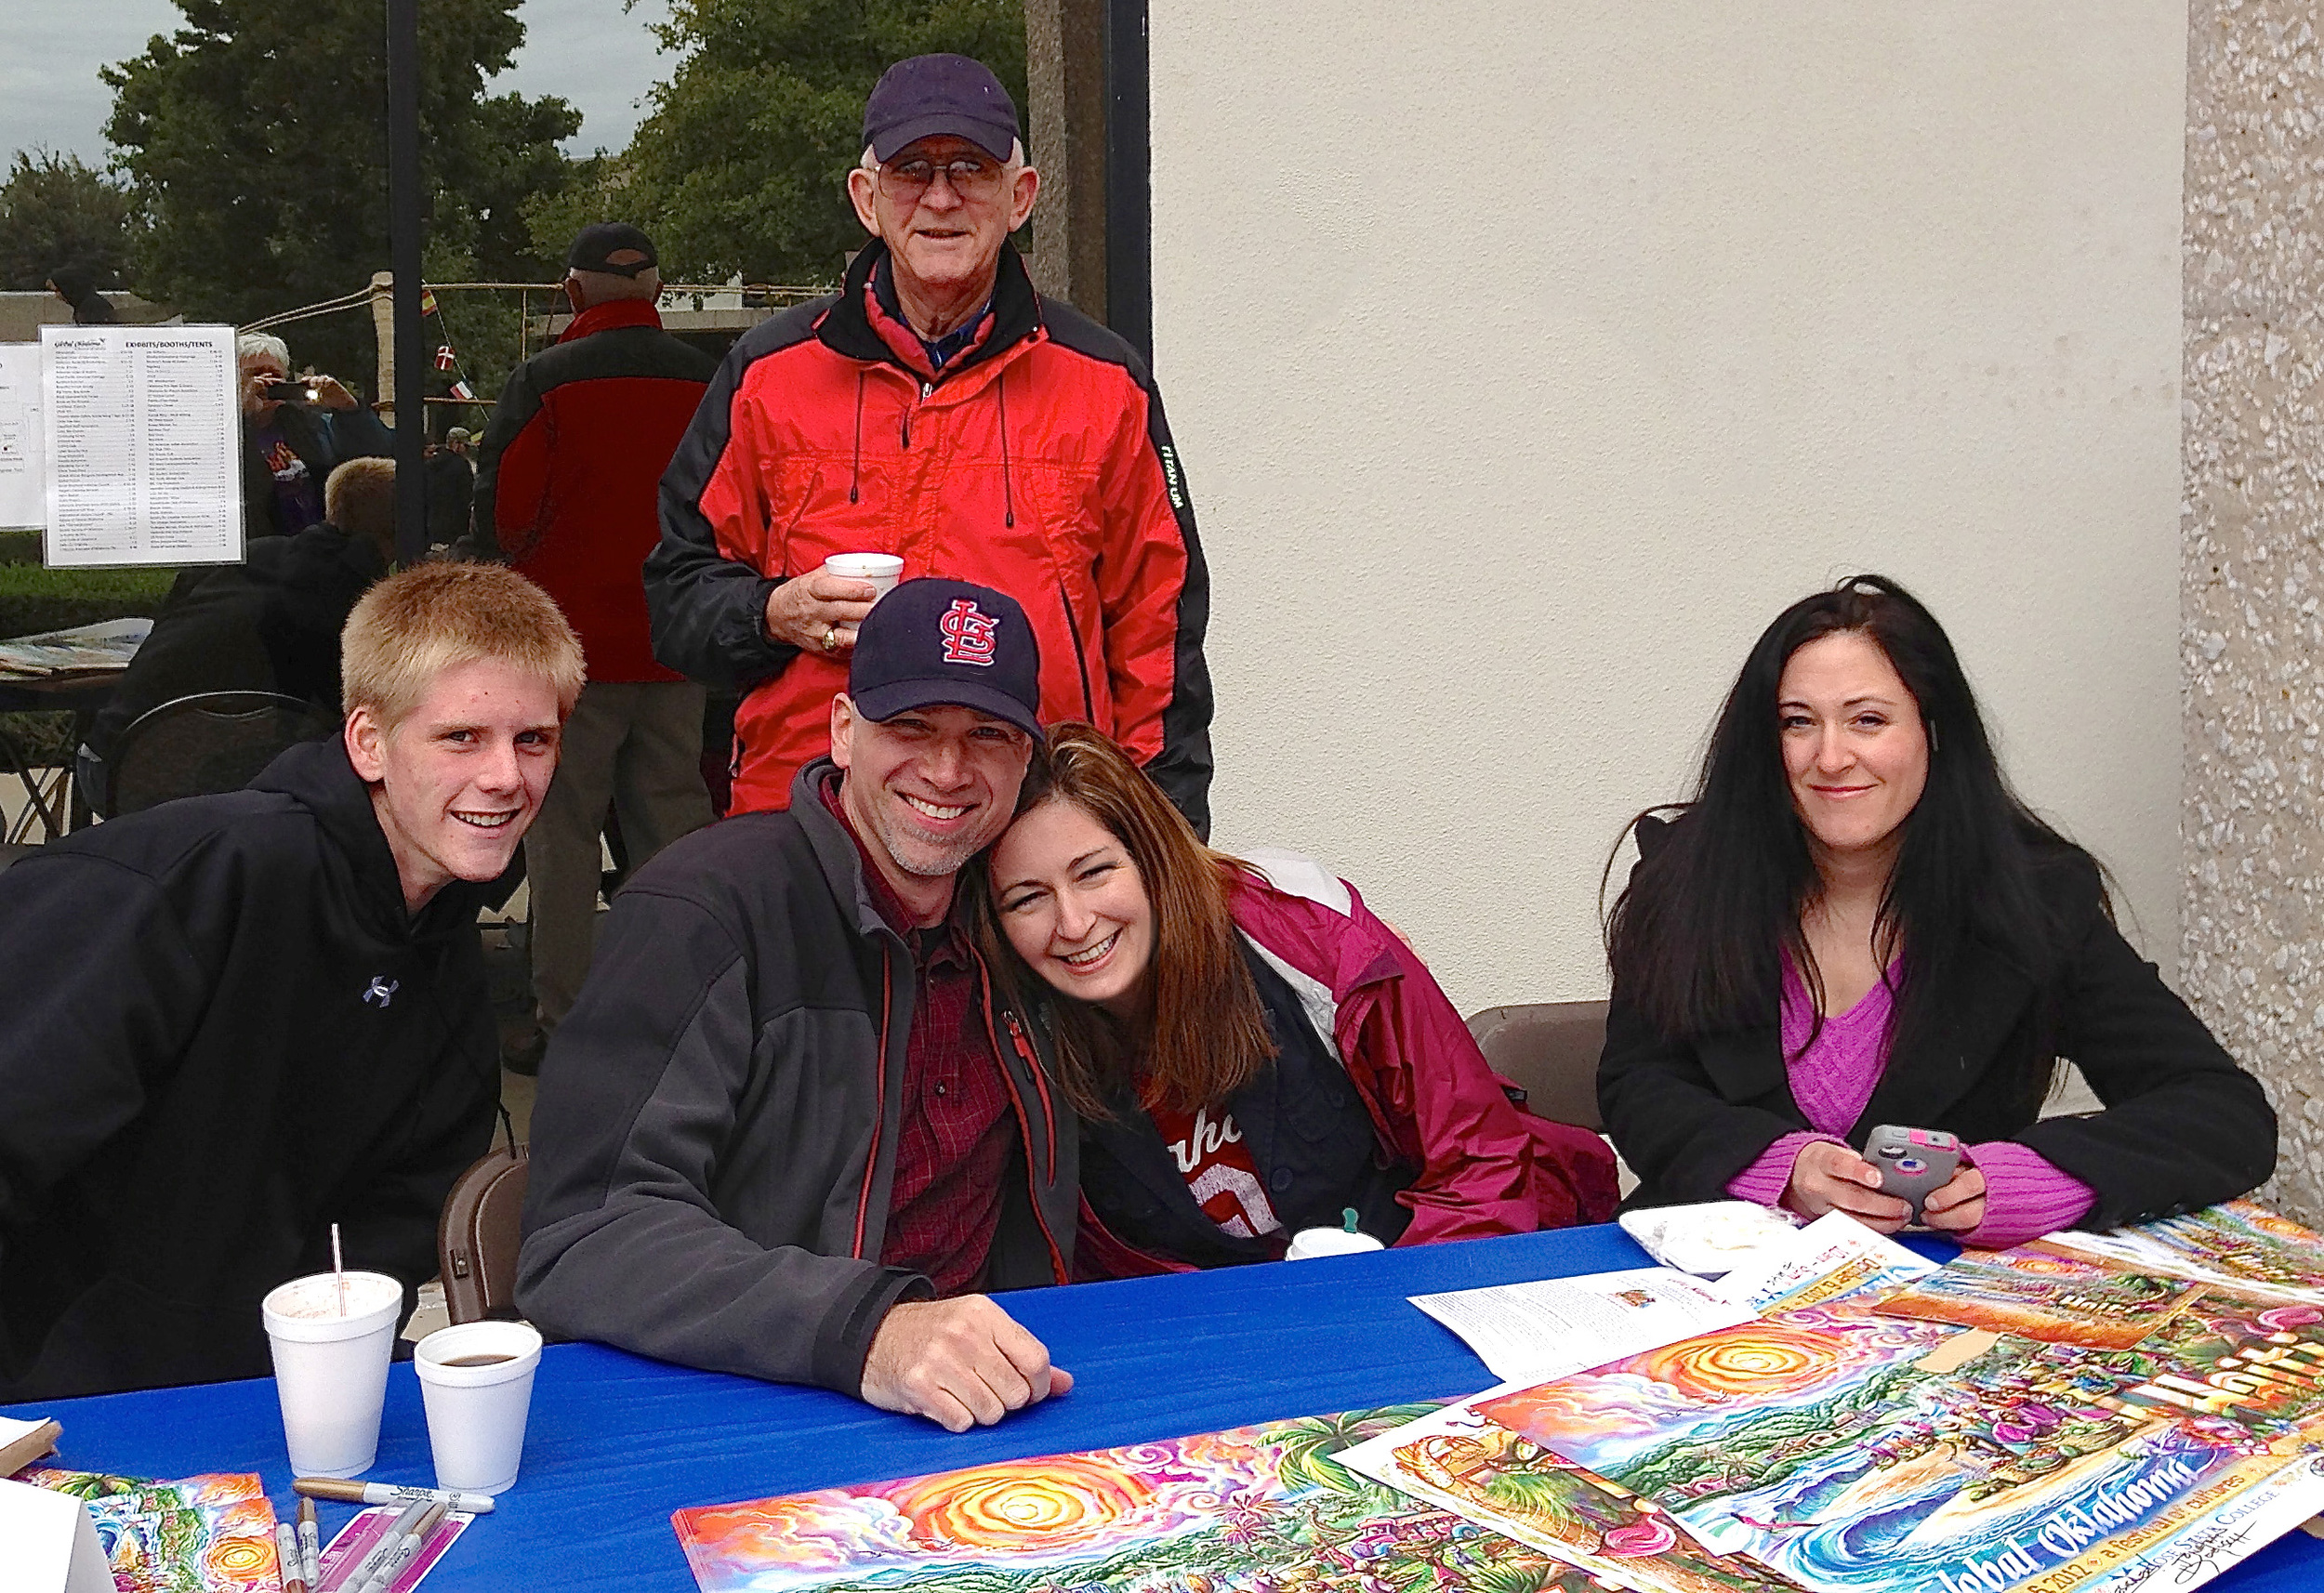 2012 Signing Booth with my girlfriend Jenna, my friend Conner at left, Jenna's Dad Dr. Kirk and her sister Julie.